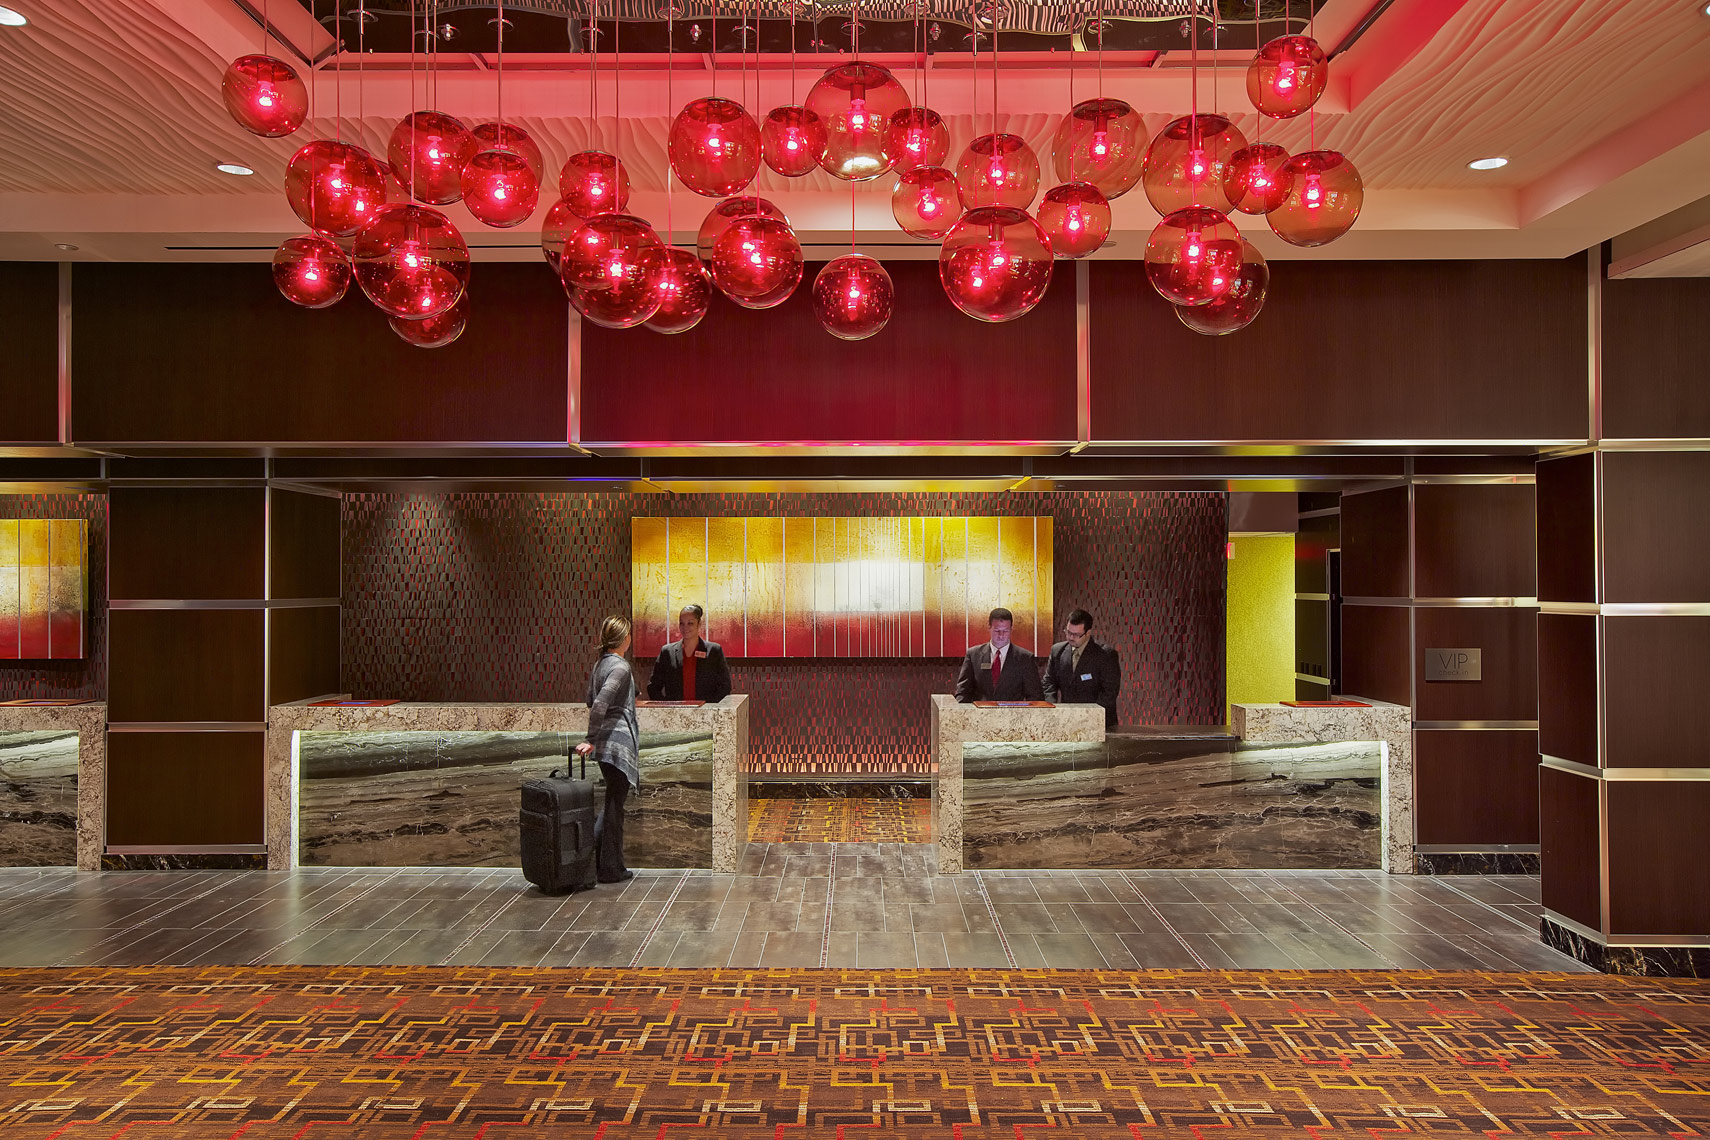 Interior Photography of Hotel Lobby